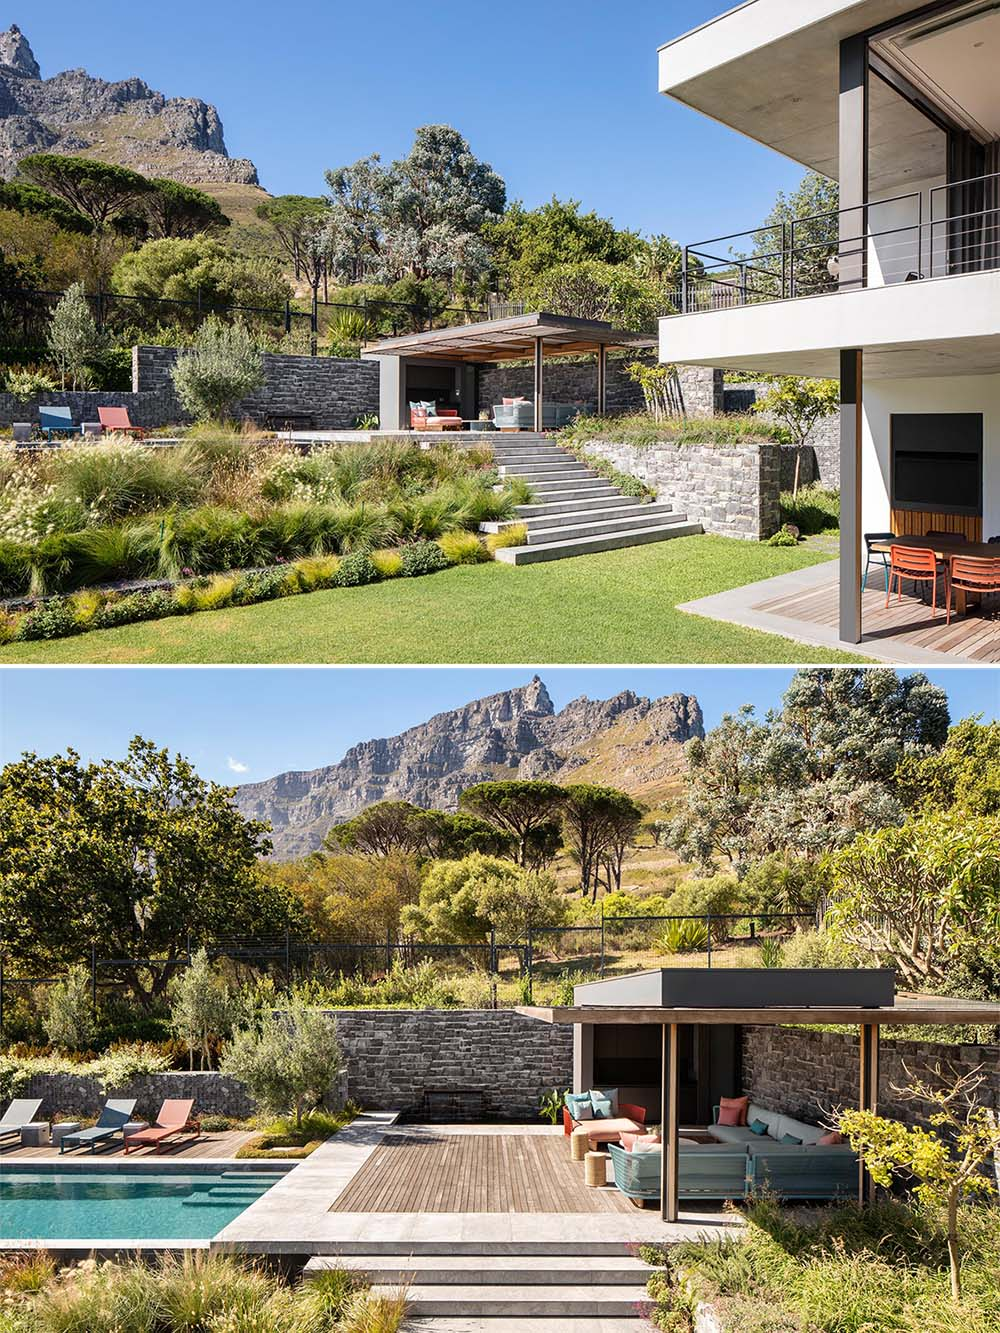 A landscaped yard with an upper level that's dedicated to a swimming pool and pergola.